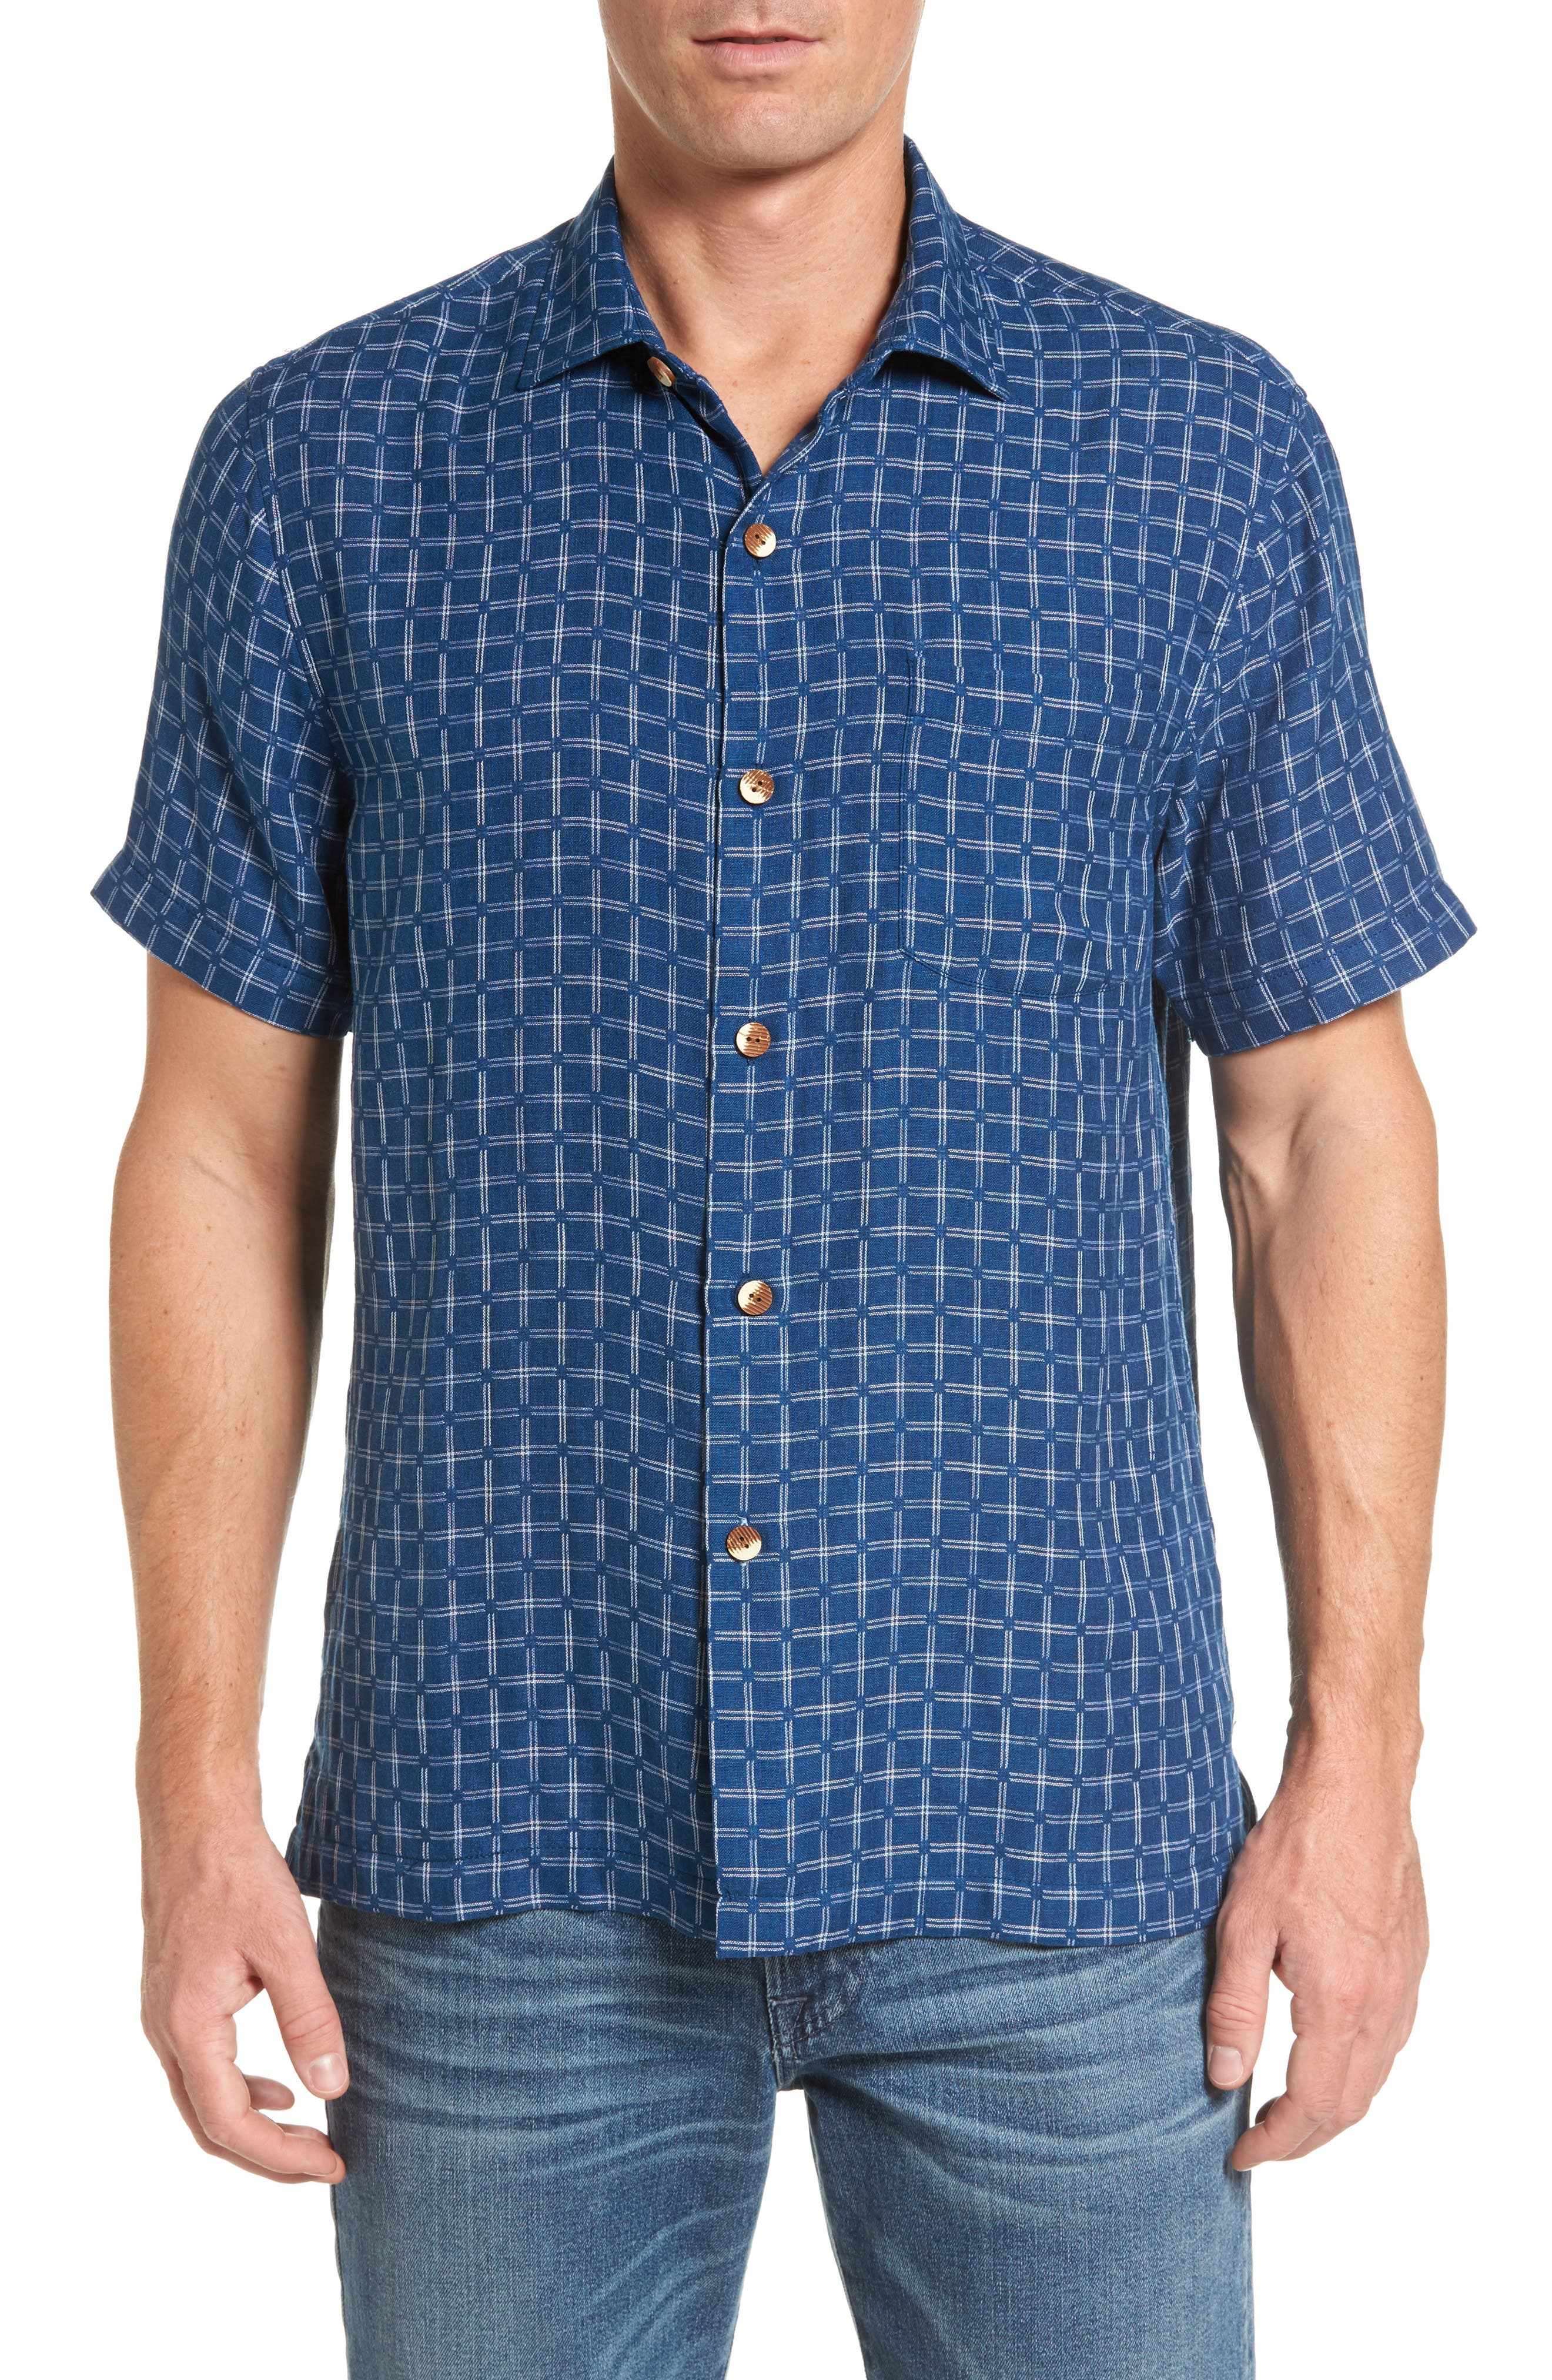 Alternate Image 1 Selected - Tommy Bahama Keep It in Check Standard Fit Silk Blend Camp Shirt